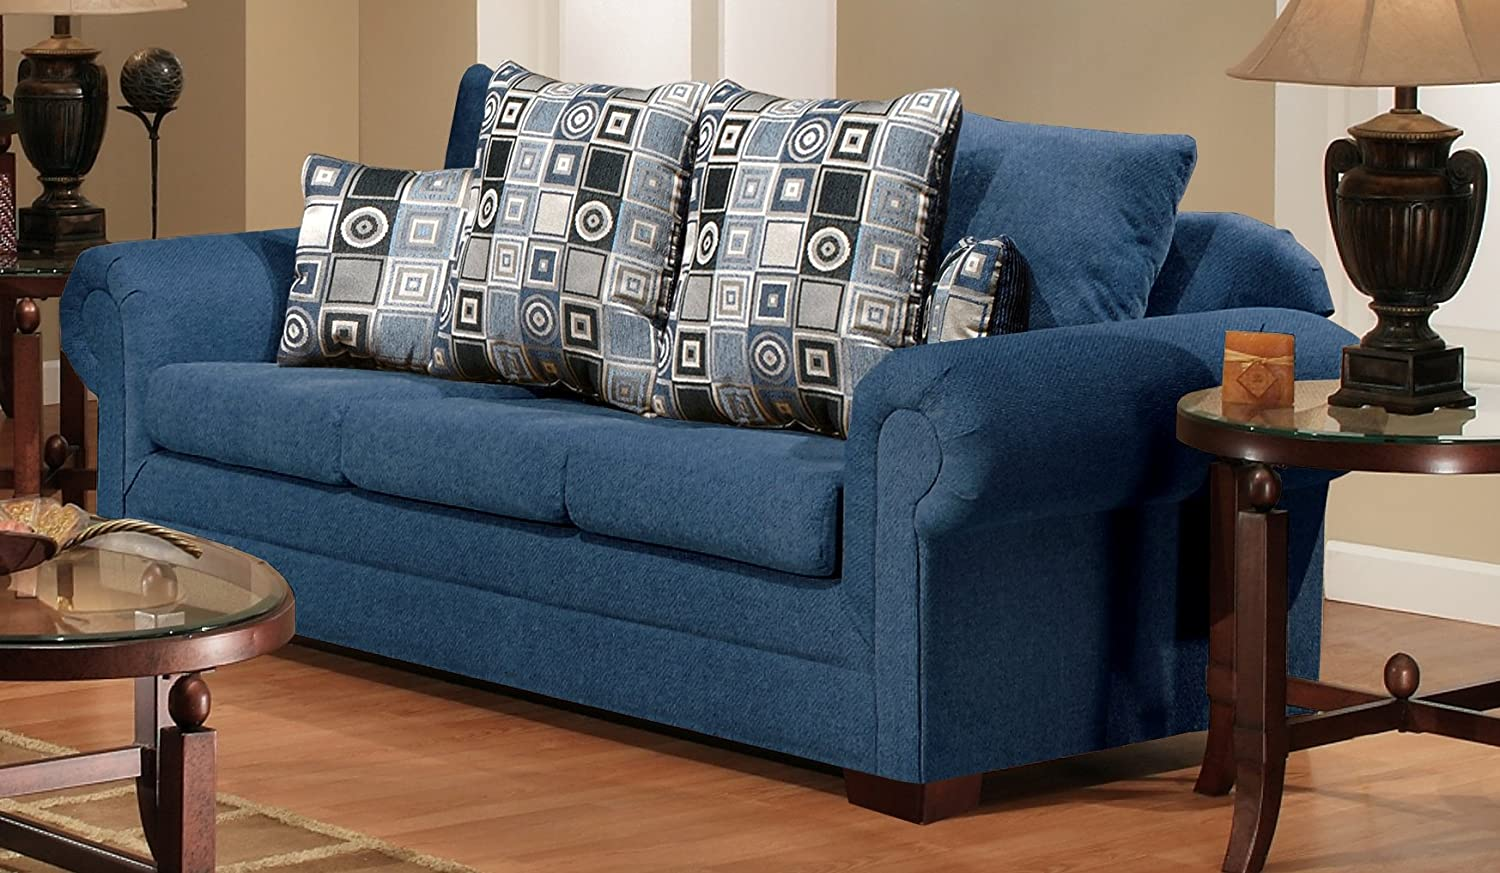 Chelsea Home Furniture Marsha Sofa - Upholstered in Tahoe Navy/Boomerang Navy